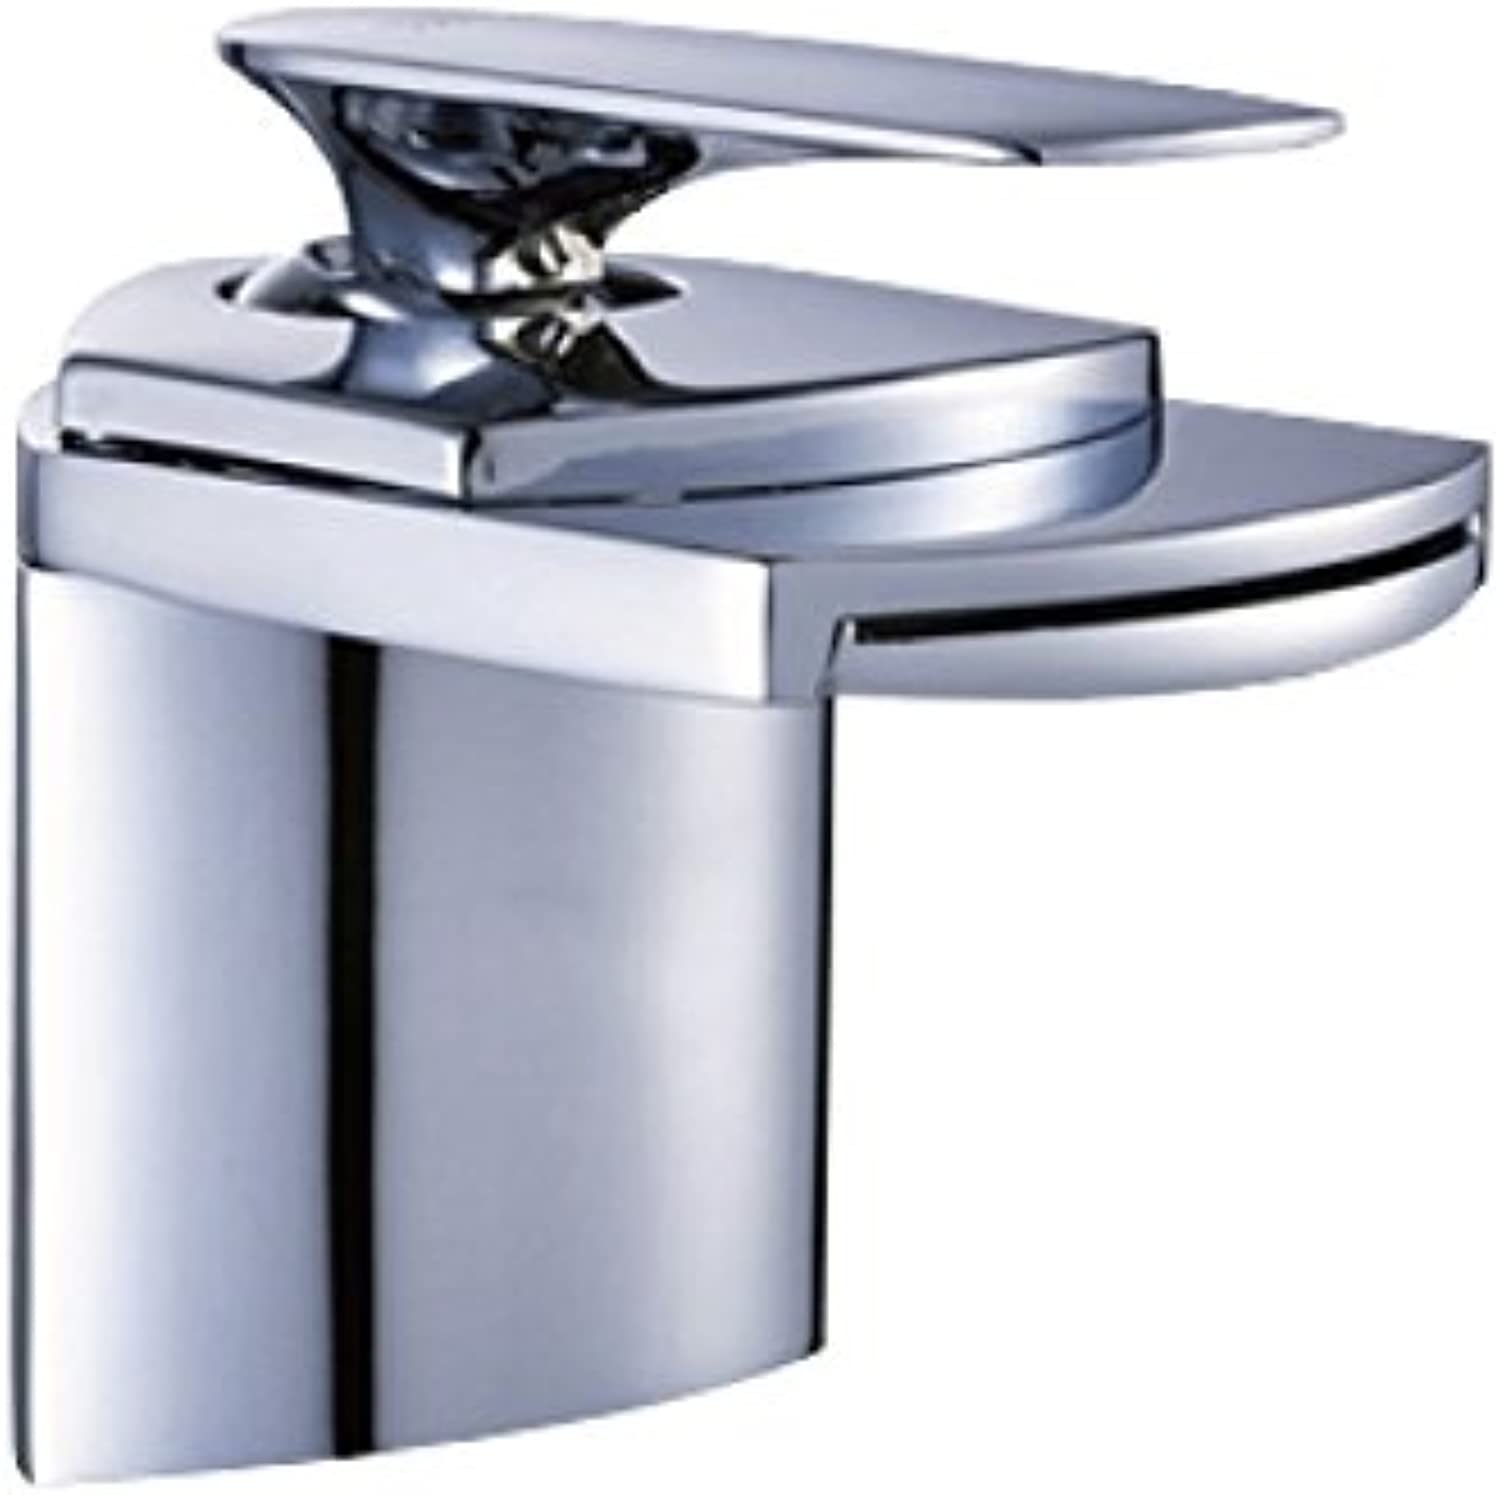 Faucet Kitchen Faucet Hot And Cold Basin Faucet Copper Chrome Waterfall Faucet Wash Basin Home